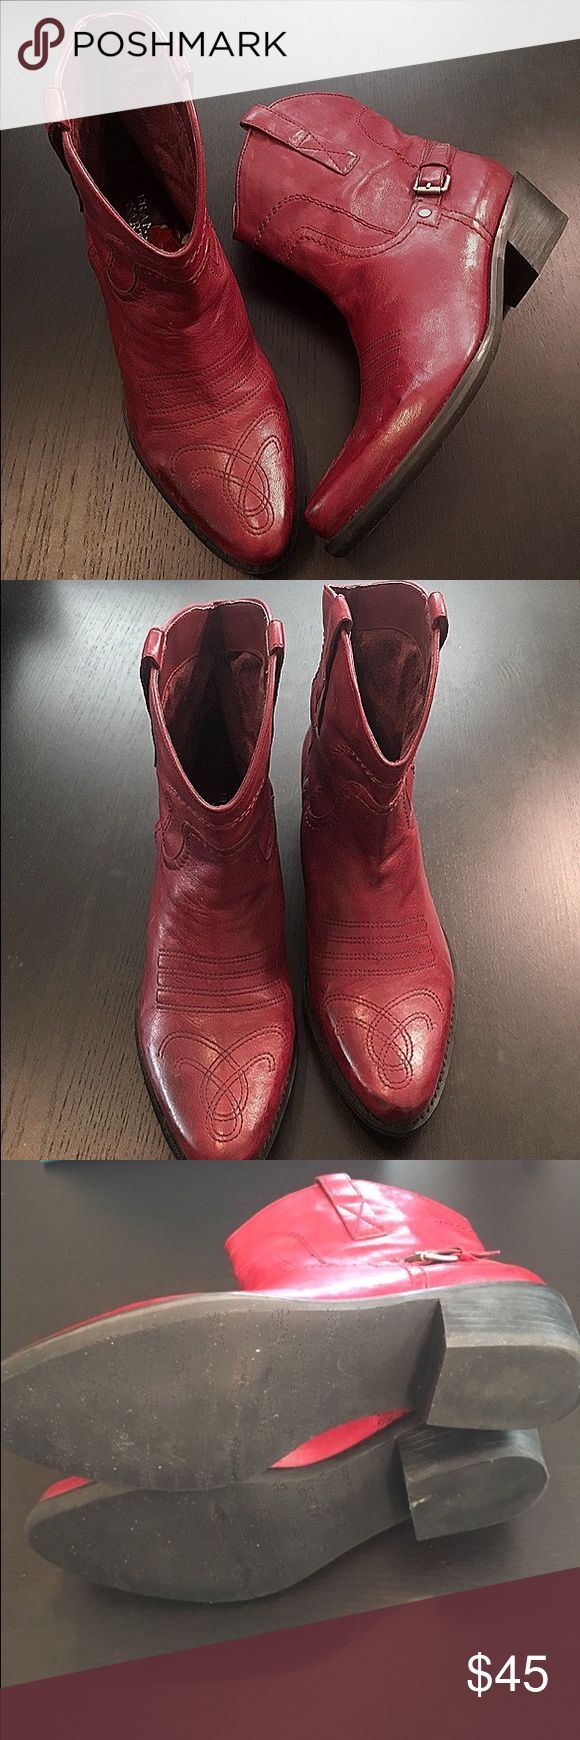 """Franco Sarto Shorty Red Cowboy Boots Must have Franco Sarto Waco Red Short Cowboy boots. The boots have leather uppers, silver faux buckles on the outside of the boots and a 2"""" heel.  Like new Condition. Only worn once. Size 9. Franco Sarto Shoes Ankle Boots & Booties"""